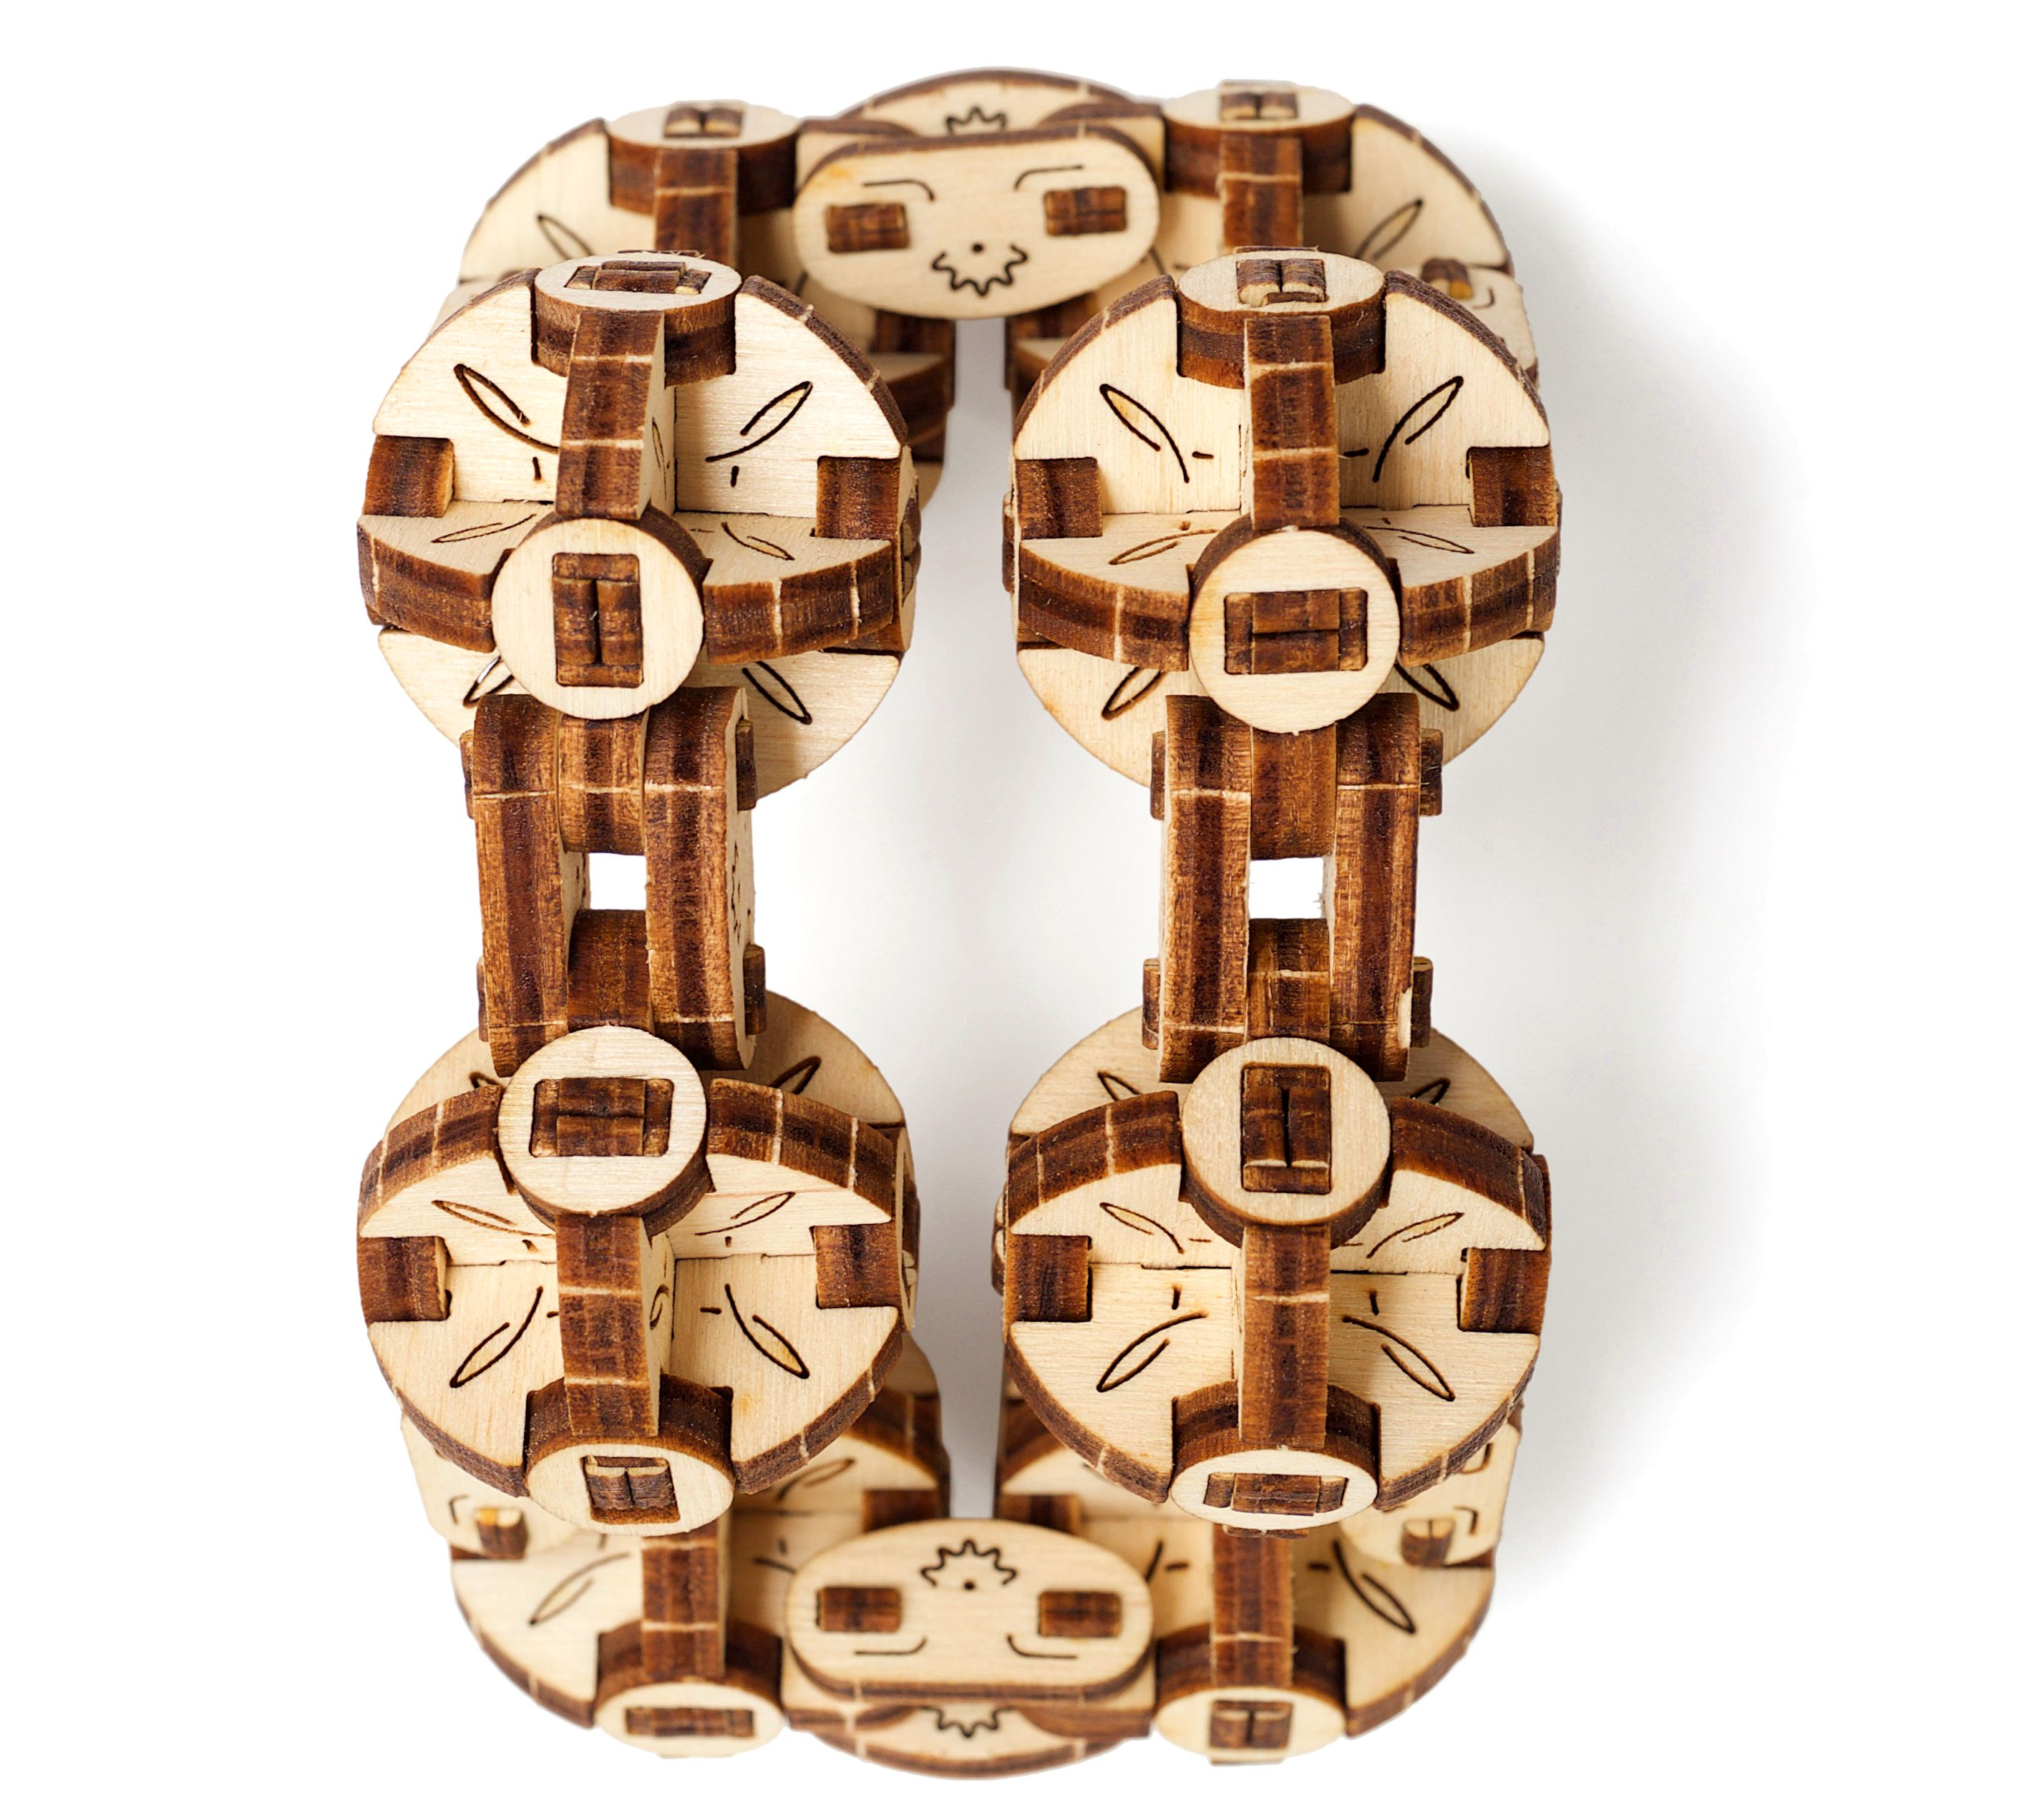 Cubus Online Shop Ugears Flexi Cubus Laser Cut Wood 144 Parts